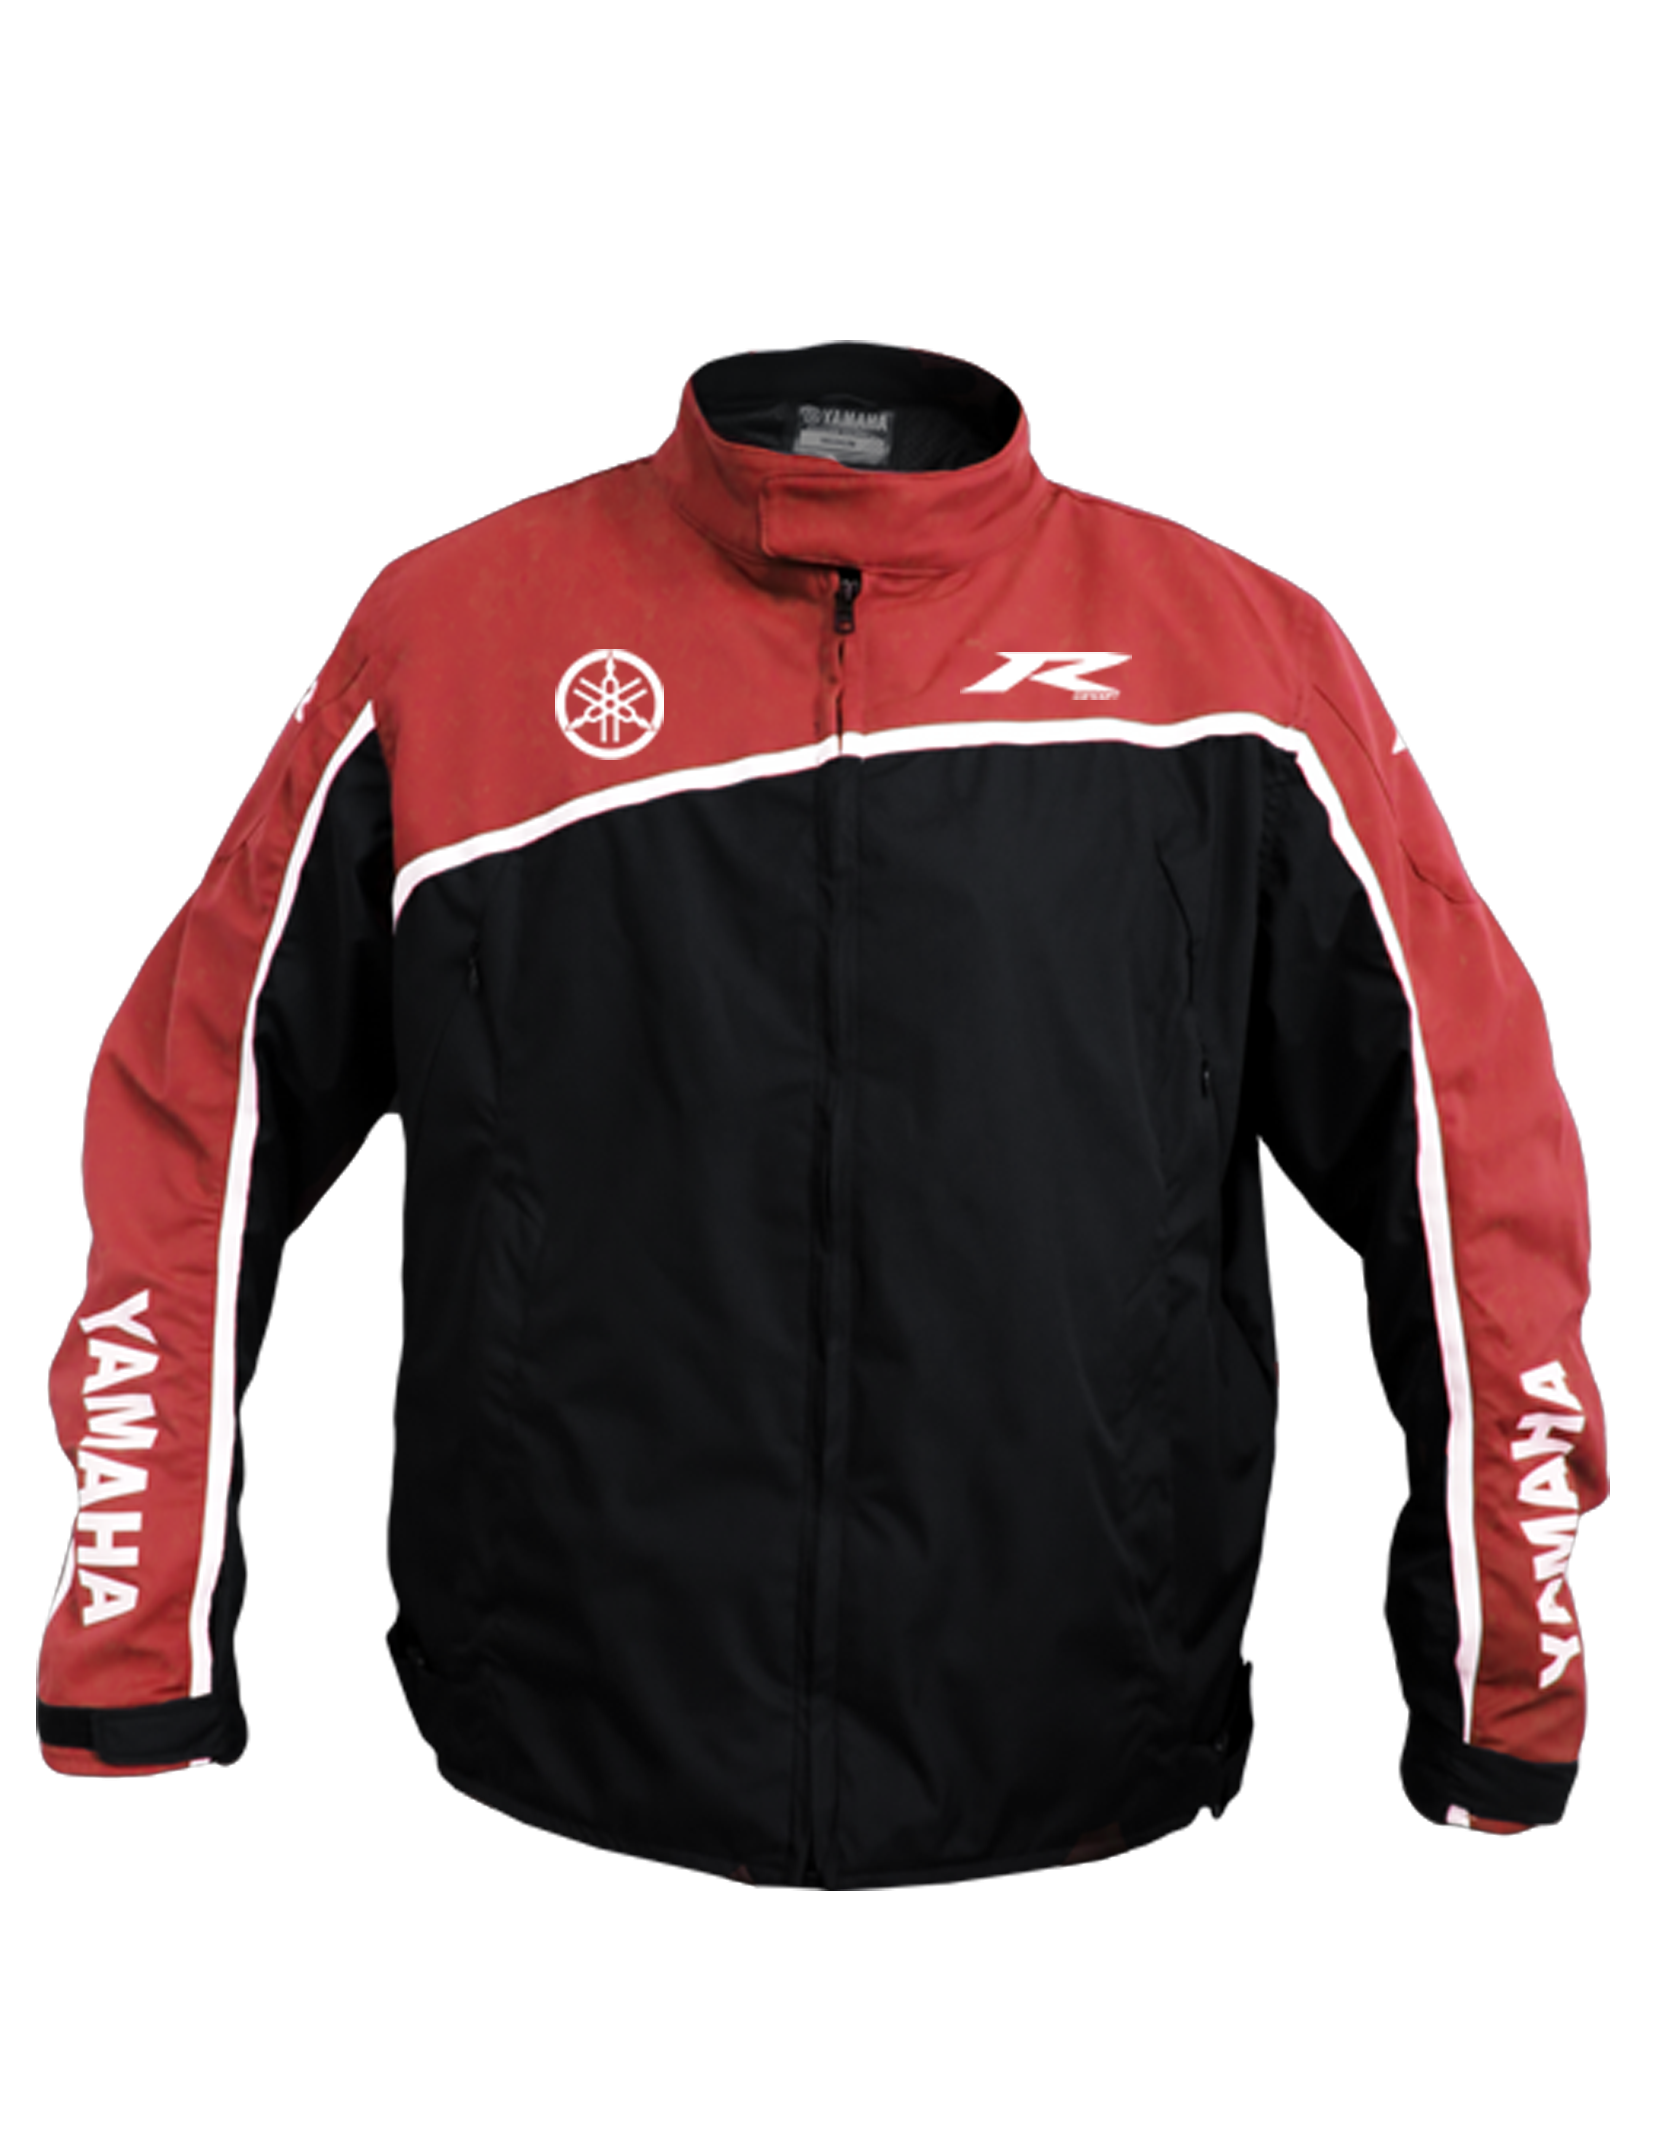 Yamaha Jacket Rconcept 01 Red